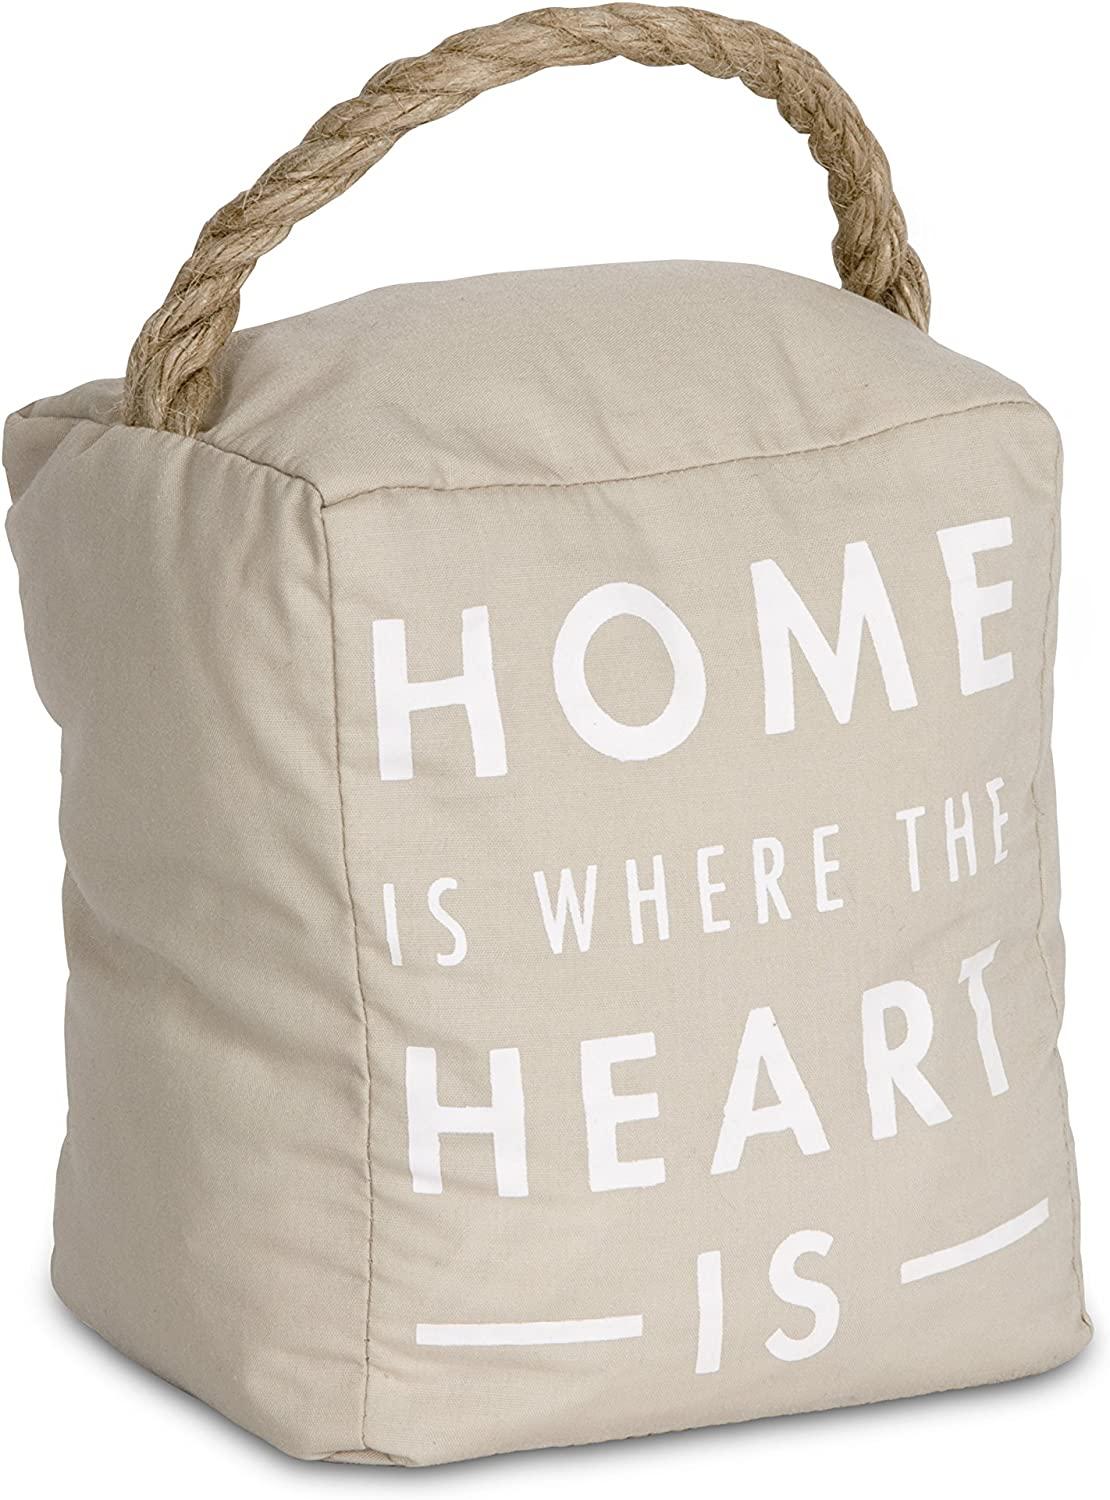 Pavilion Gift Company 72191 Home is Where The Heart is Door Stopper, 5 x 6